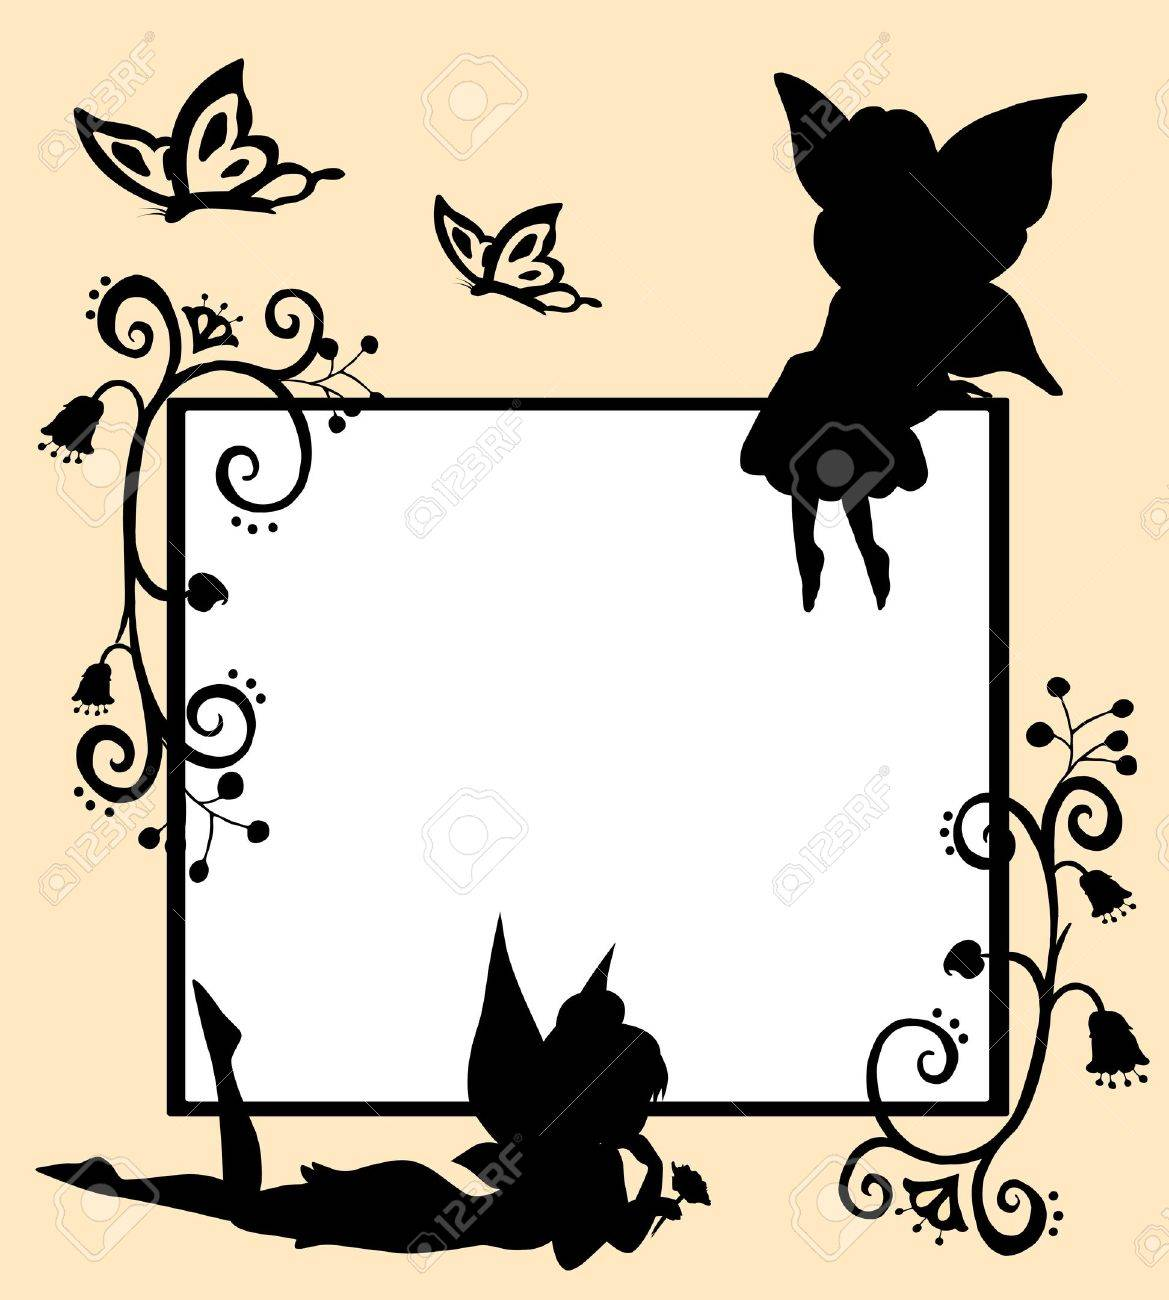 Frame with silhouettes of fairies, butterflies and flowers Stock Vector - 16570365